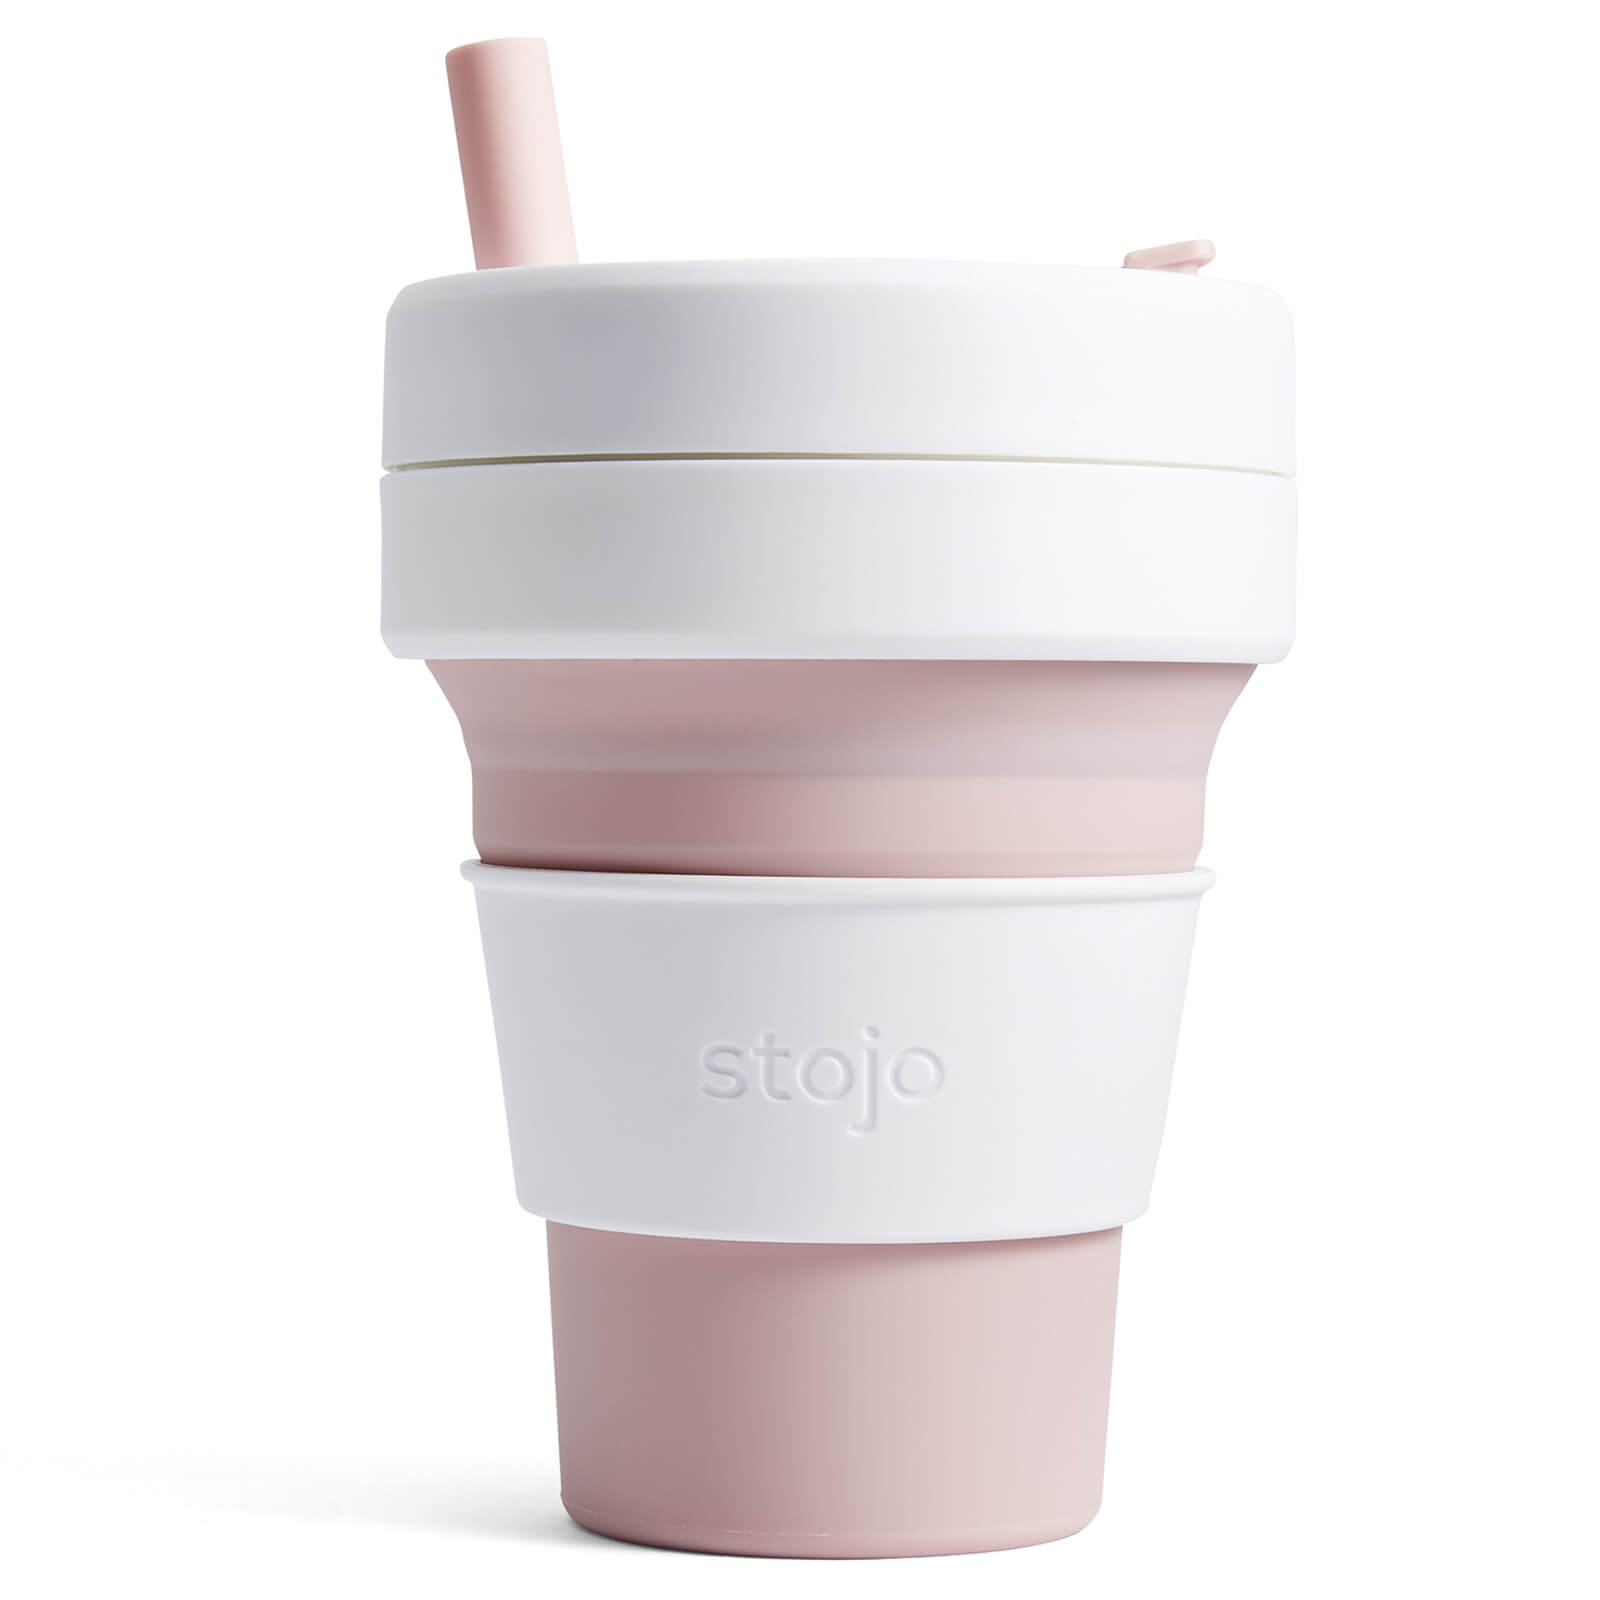 Stojo 16oz Biggie Collapsible Coffee Cup - Rose